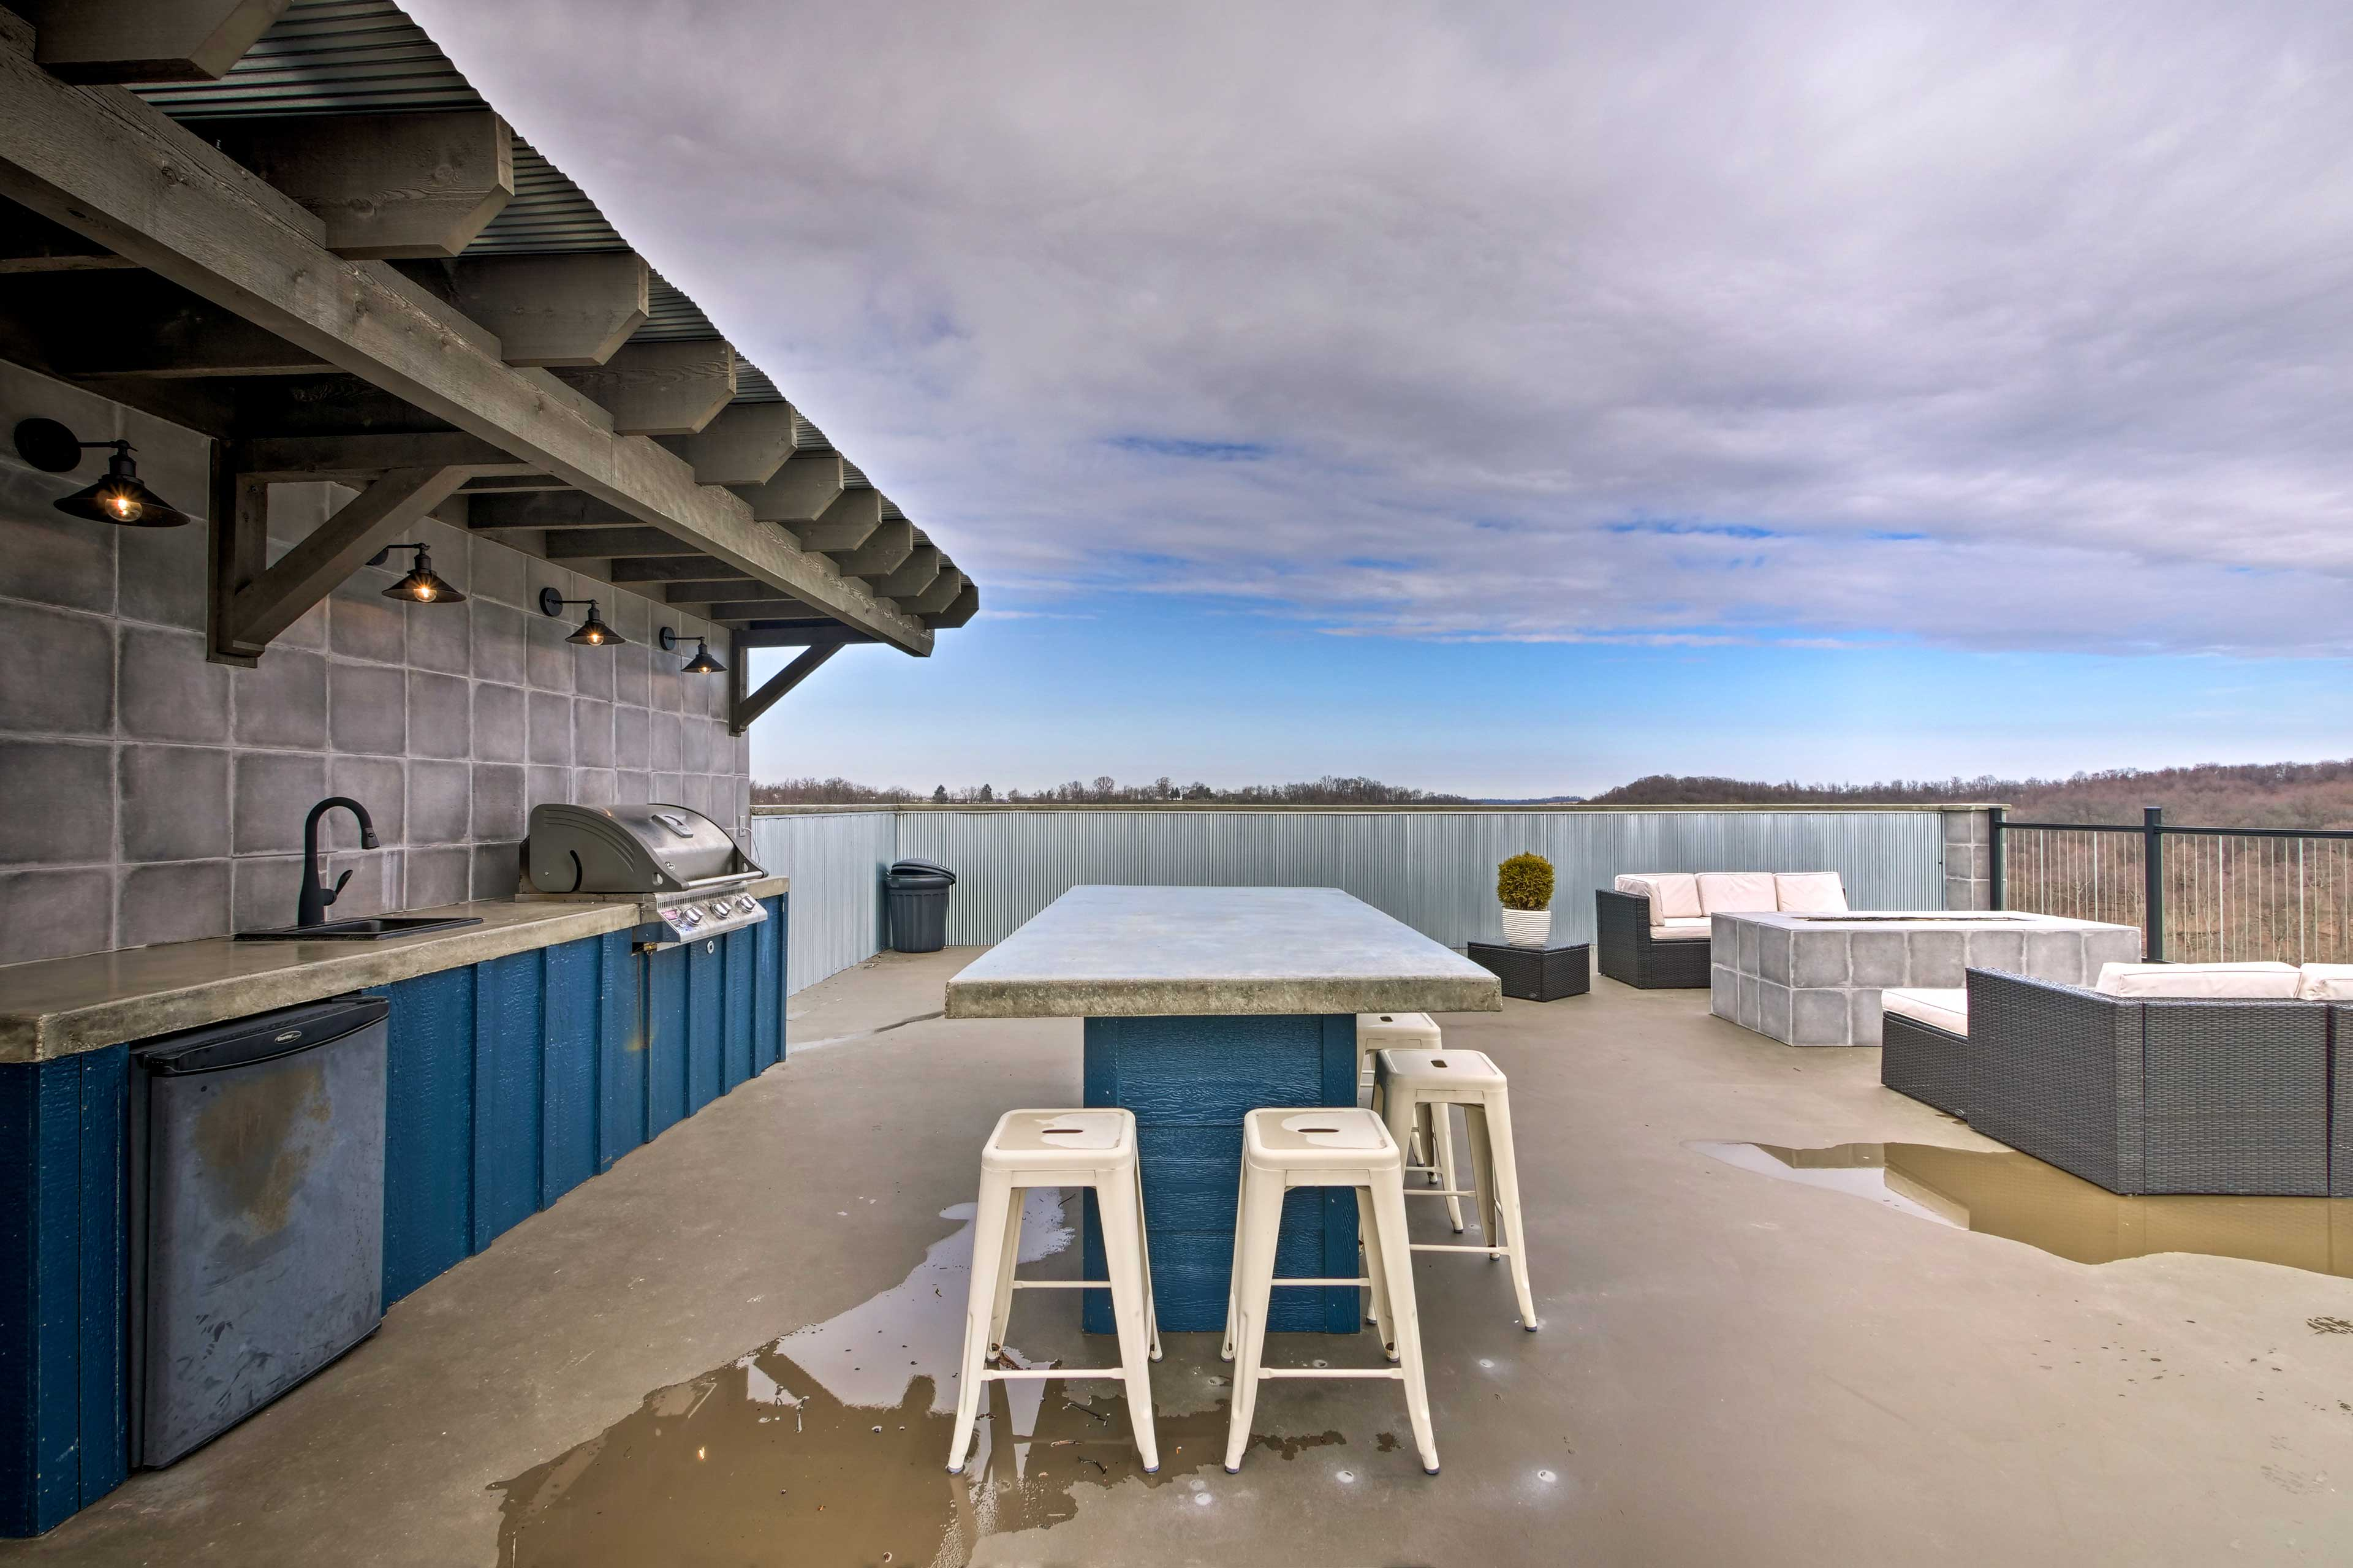 Enjoy hanging out on the rooftop patio.